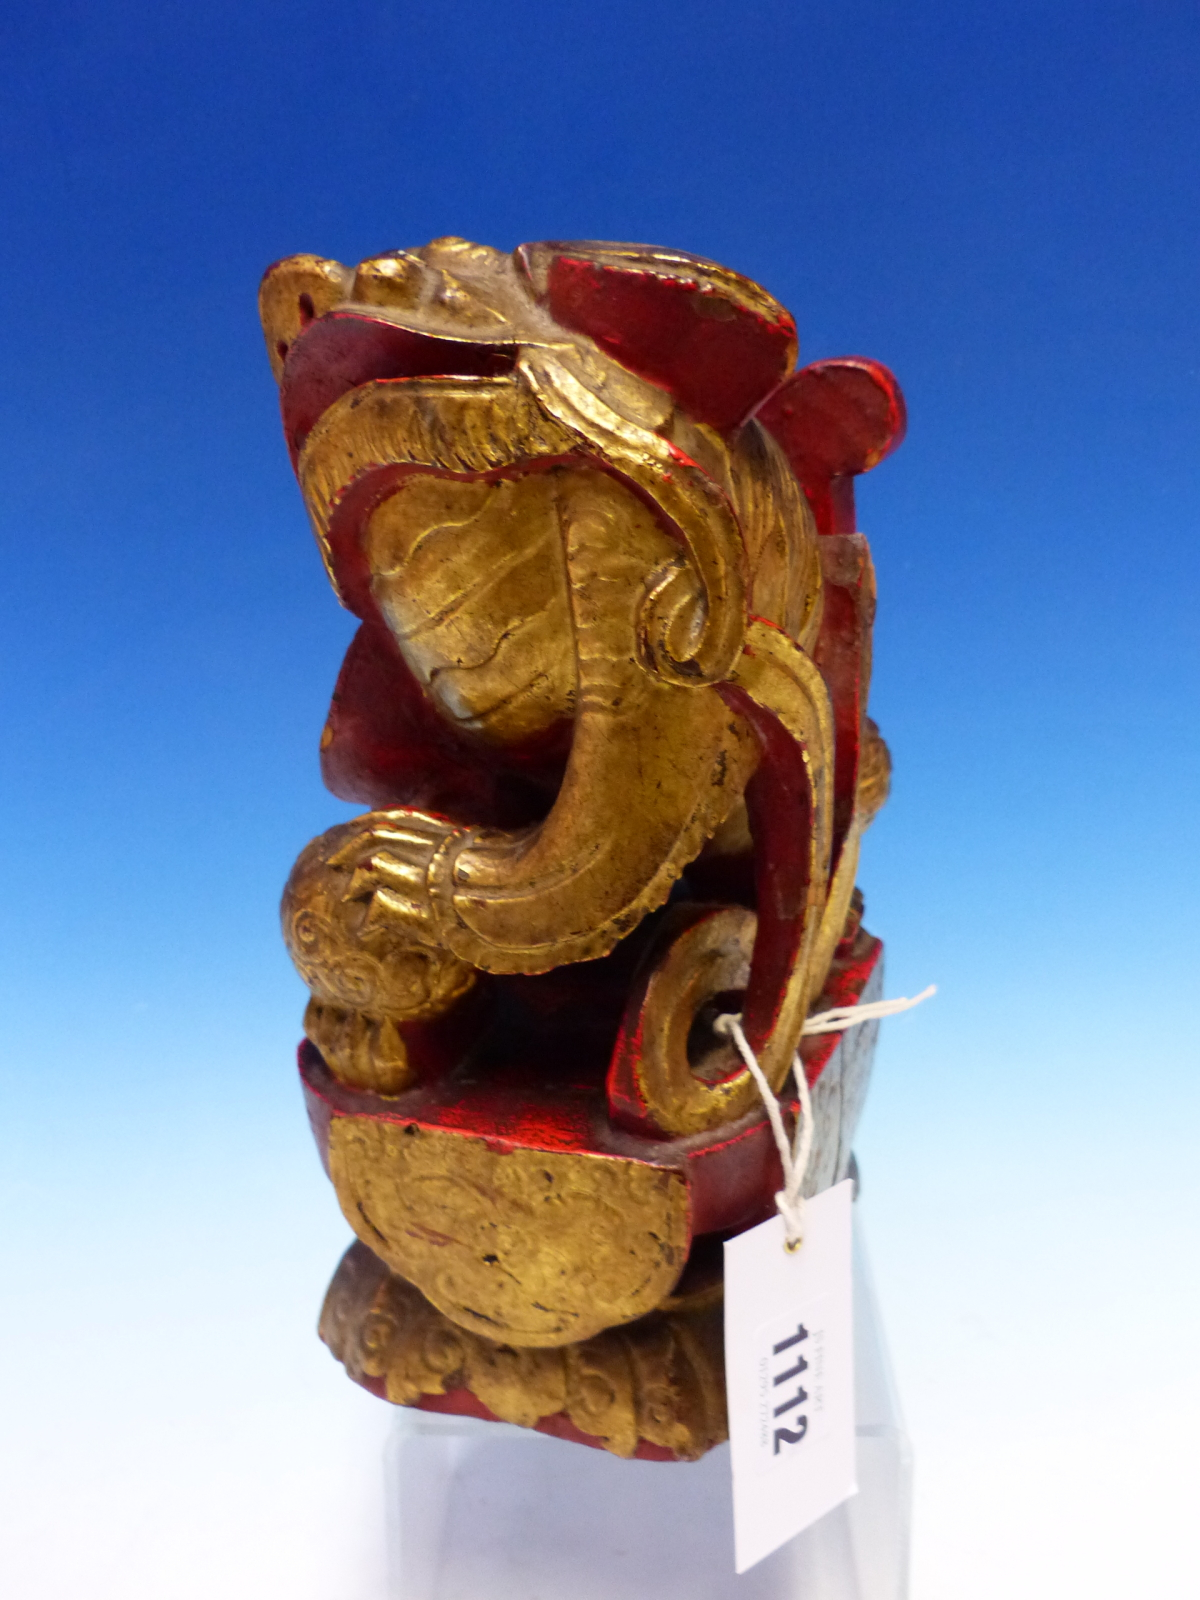 A CHINESE CARVED WOOD LION SEATED WITH A BROCADE BALL PARCEL GILT ON A RED LACQUER GROUND. H 23cms. - Image 5 of 5